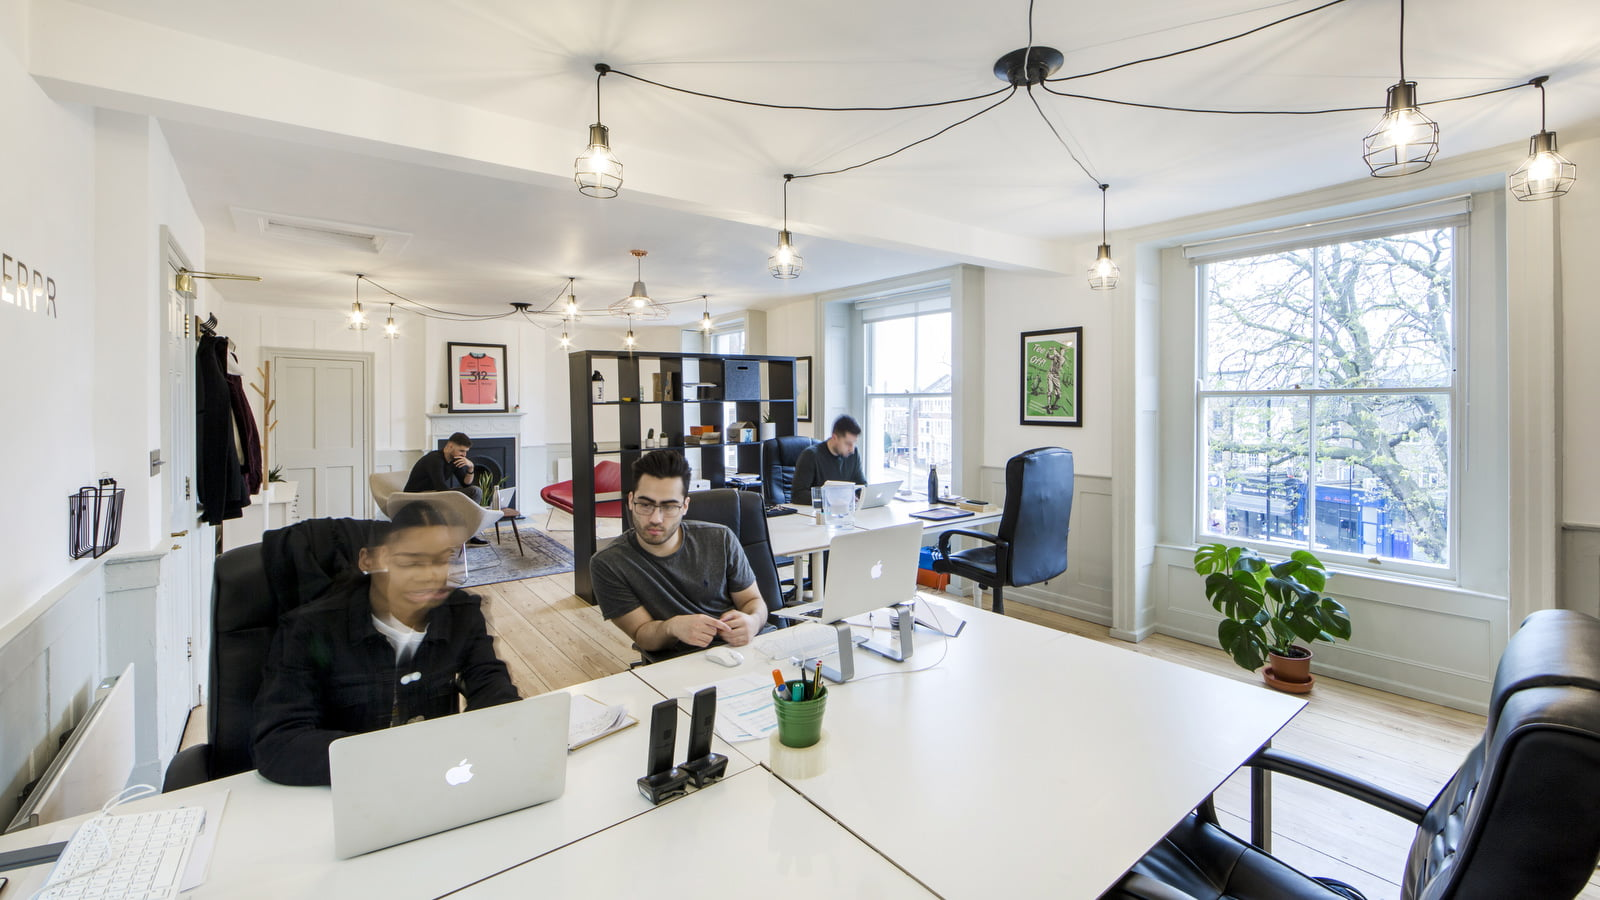 Best Office Spaces in London - Dalston - Dalston Lane